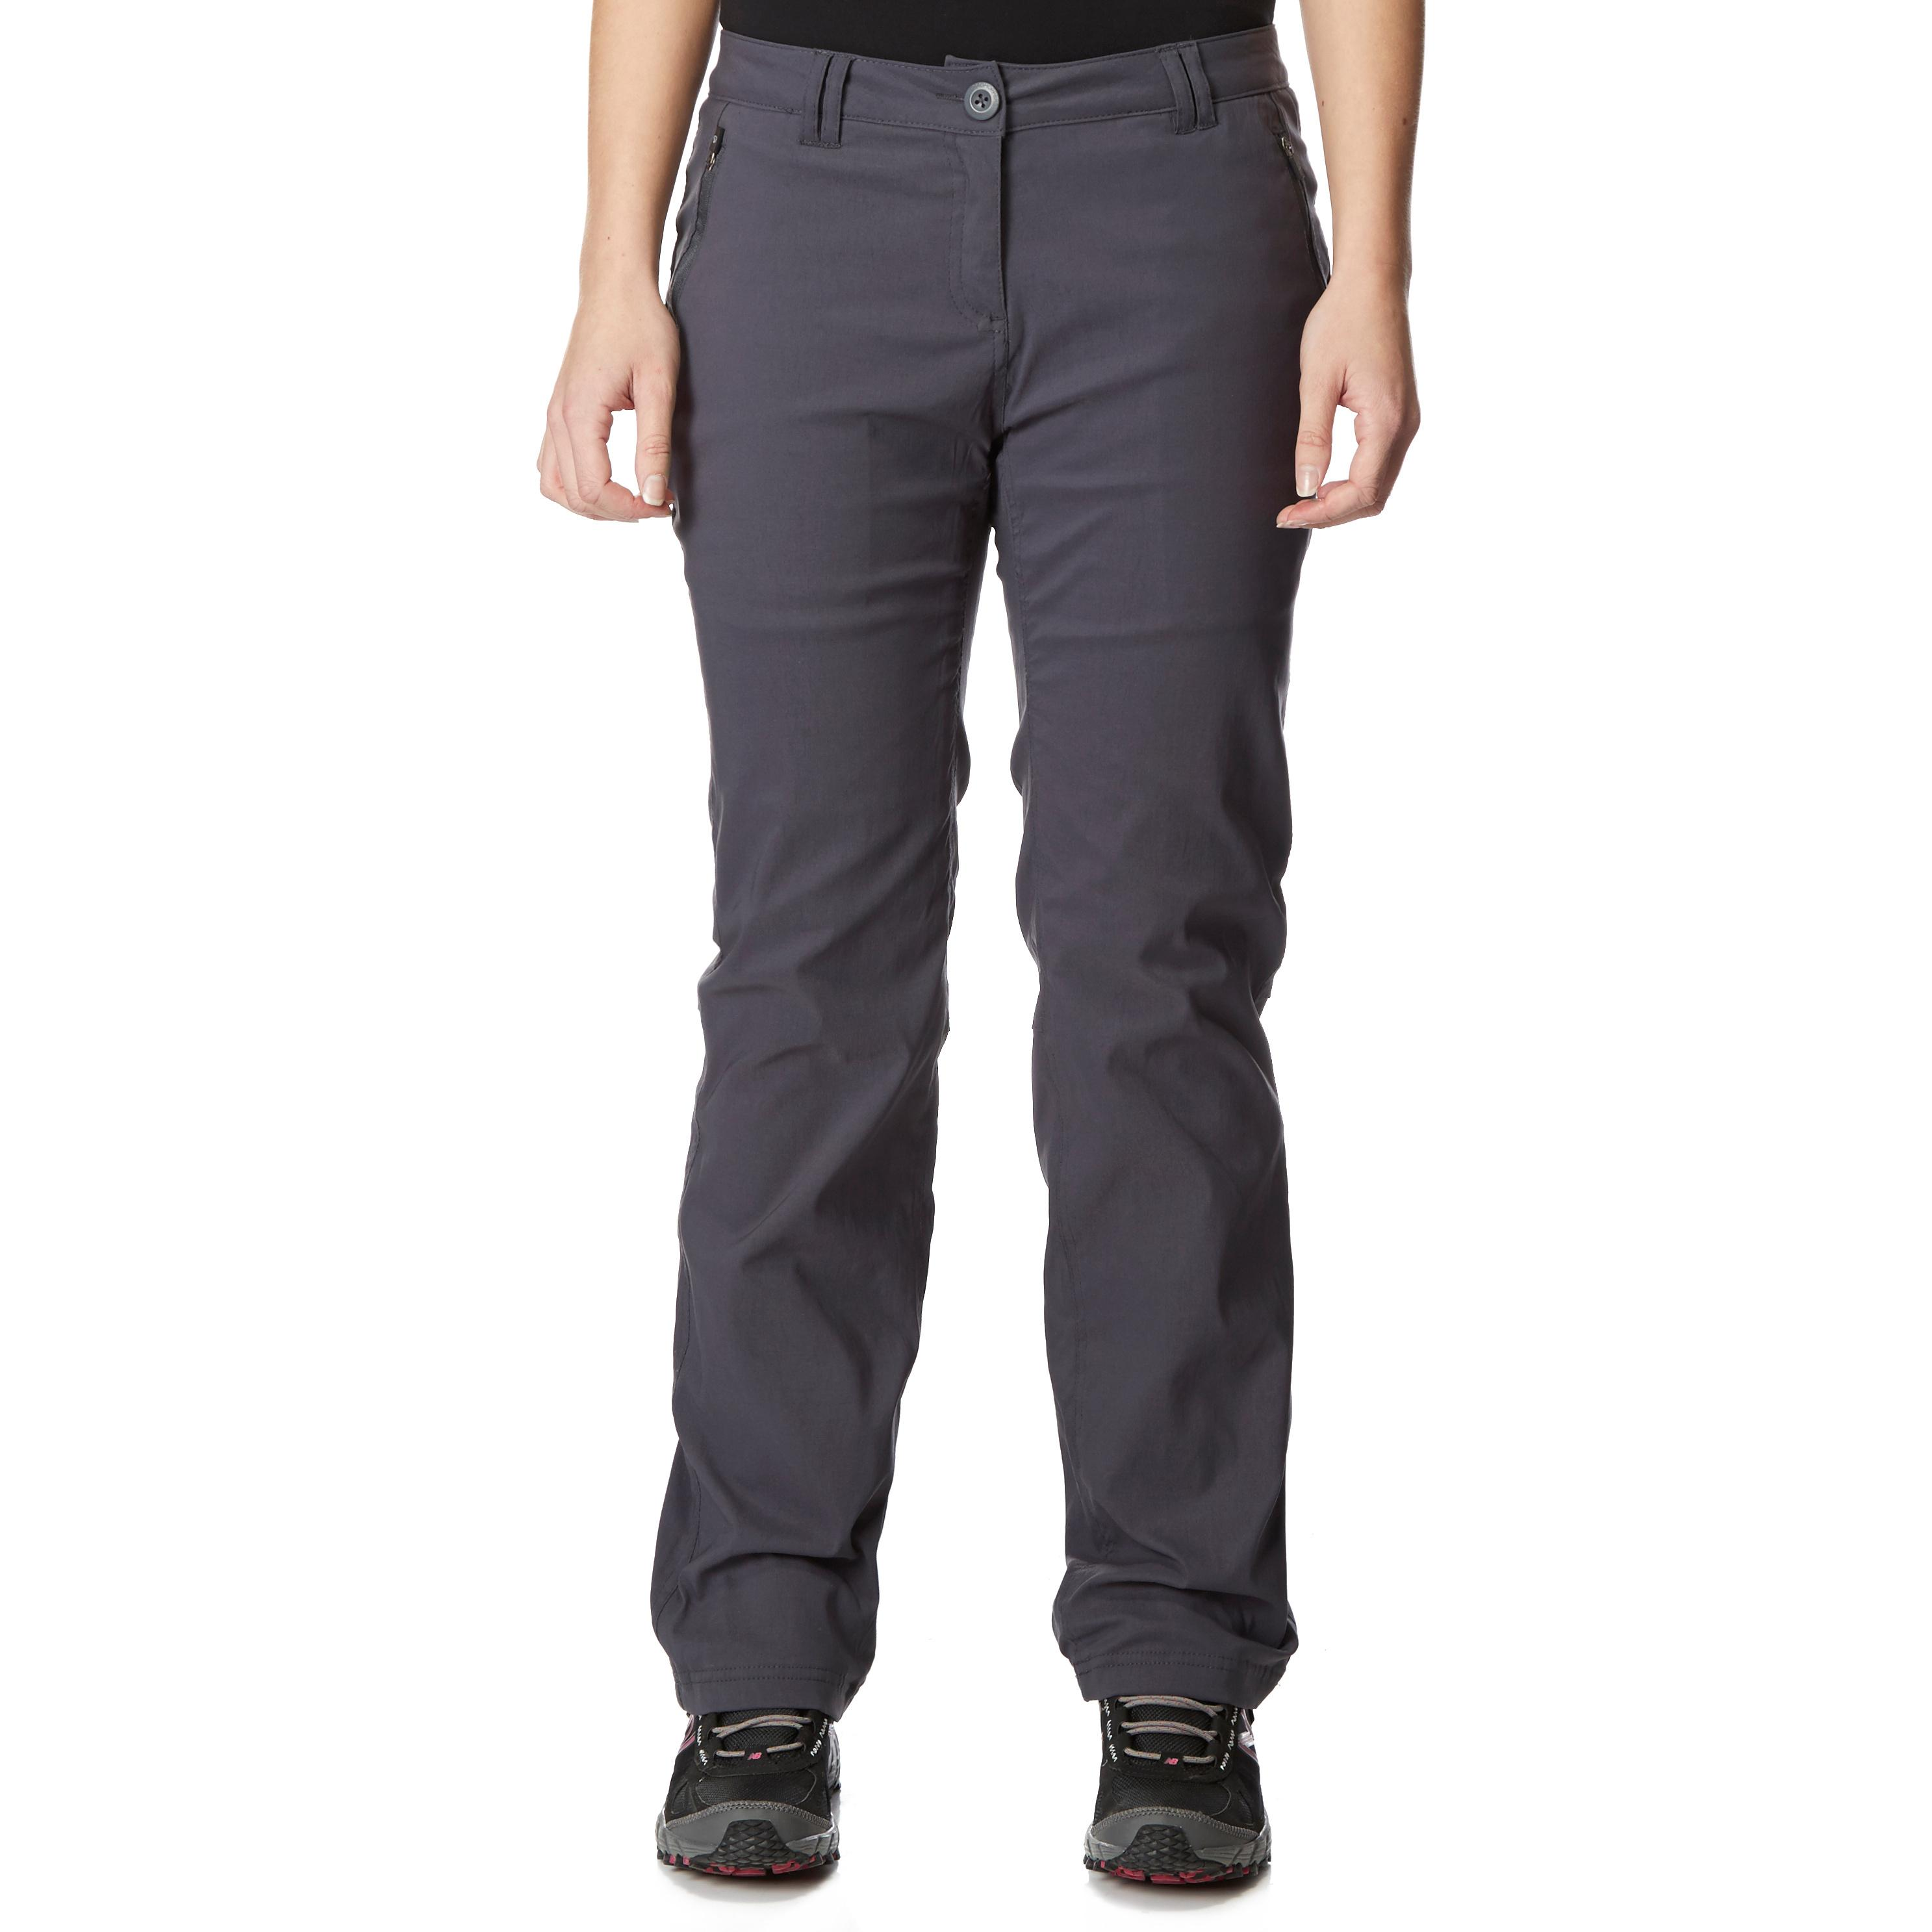 Craghoppers Womens Kiwi Lined Trousers Grey